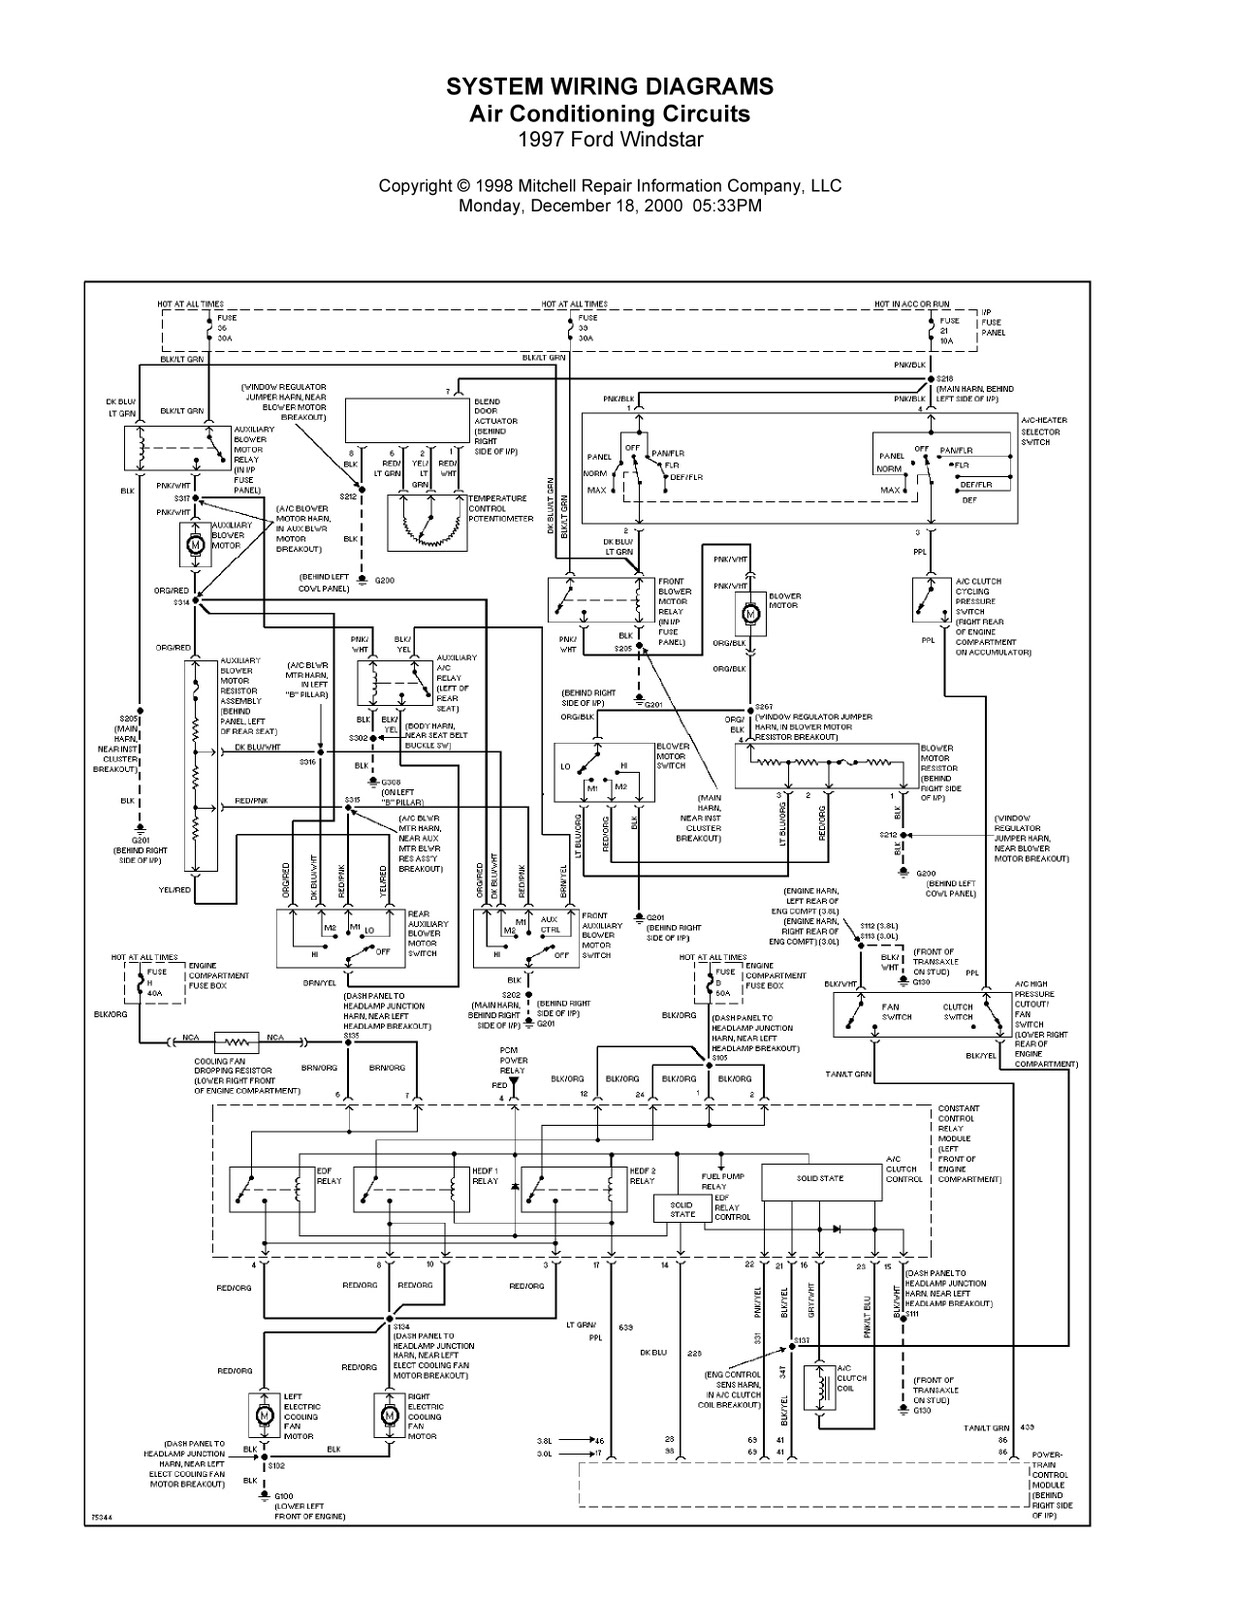 1998 ford windstar wiring schematic wiring diagram used 1998 ford windstar radio wiring [ 1236 x 1600 Pixel ]